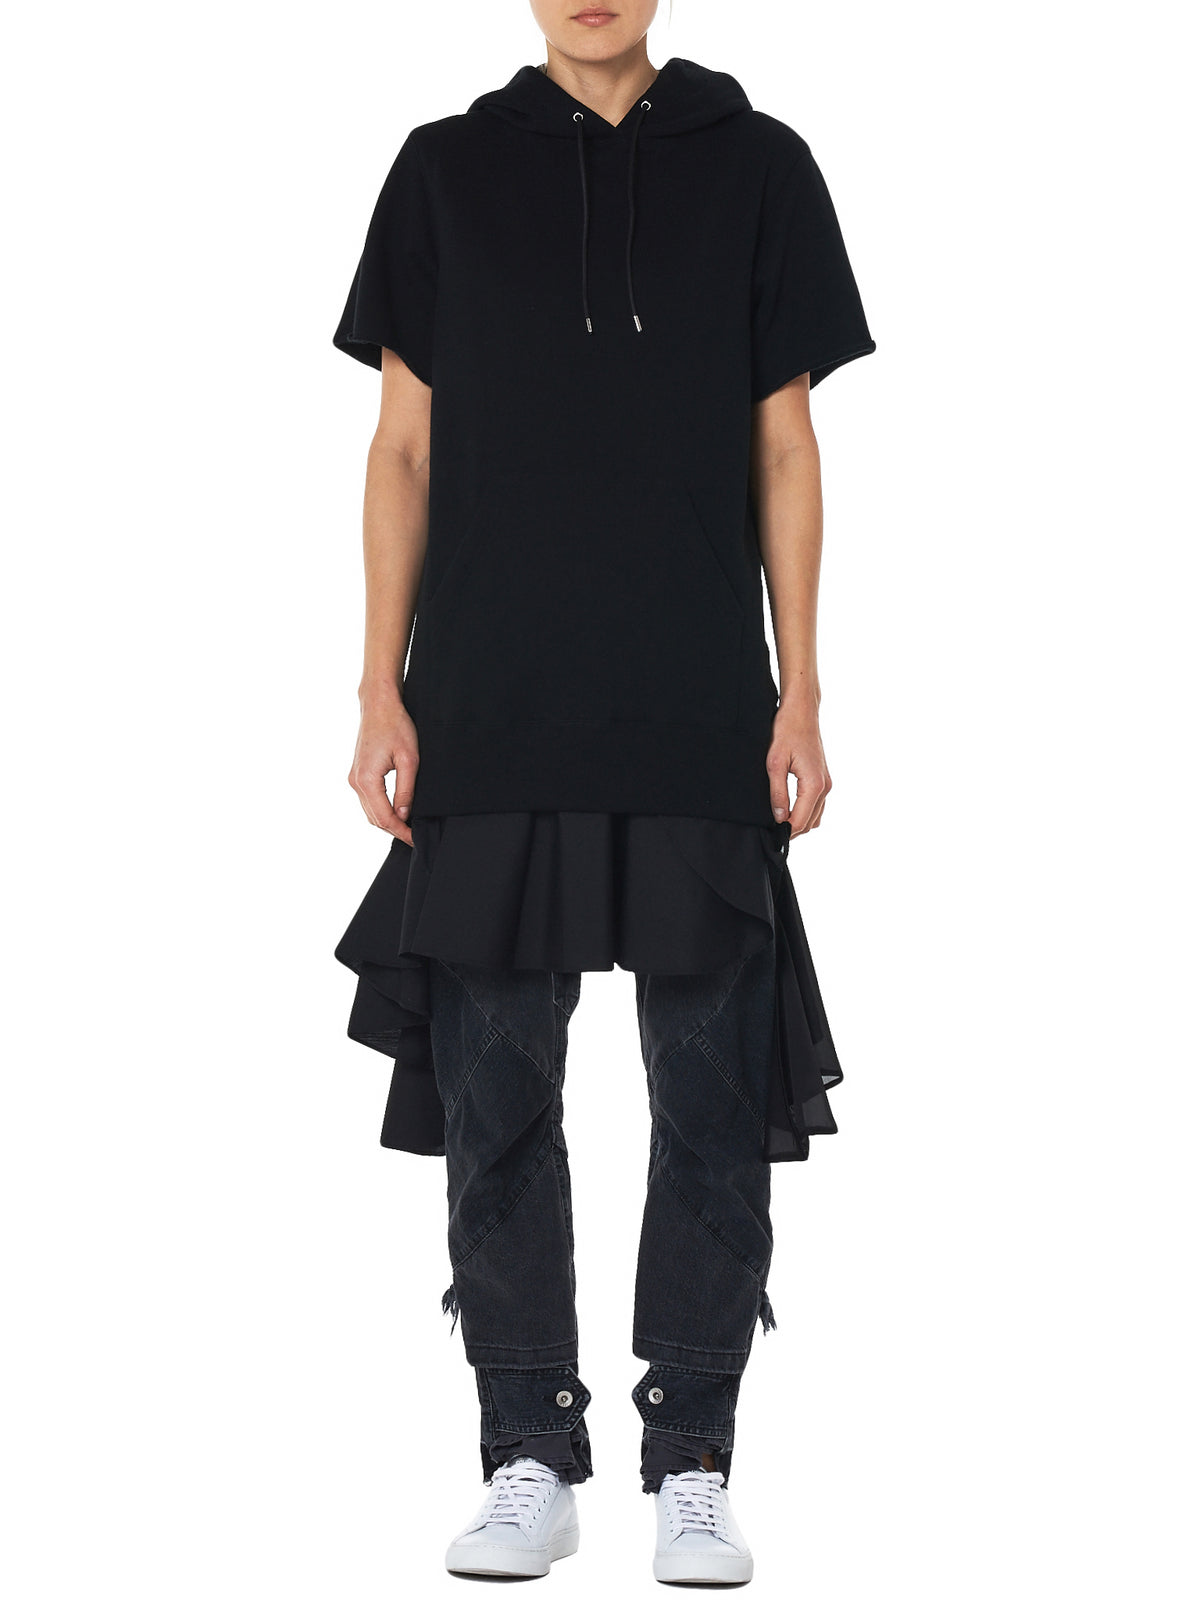 Sacai Pullover Dress - Hlorenzo Front